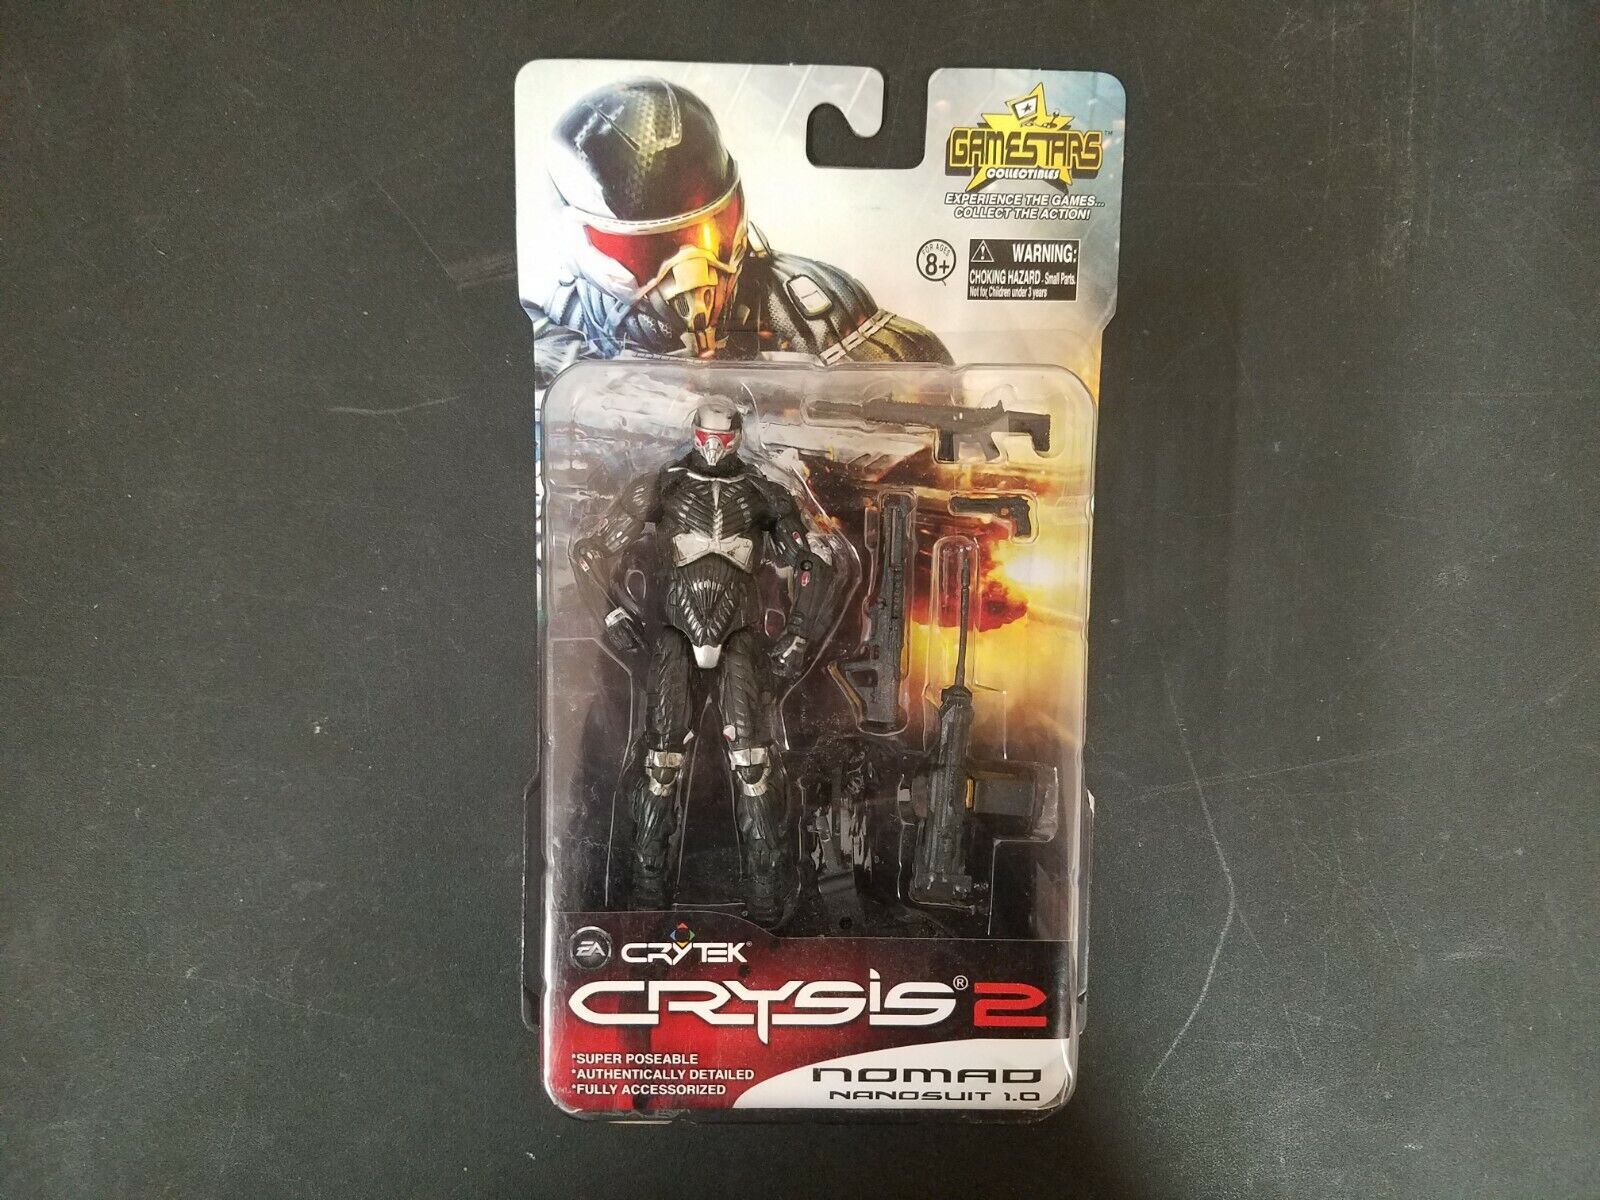 Crysis 2 NOMAD NANOSUIT 1.0 Action Figure  Gamestars Collectibles EA Crytek 3.75